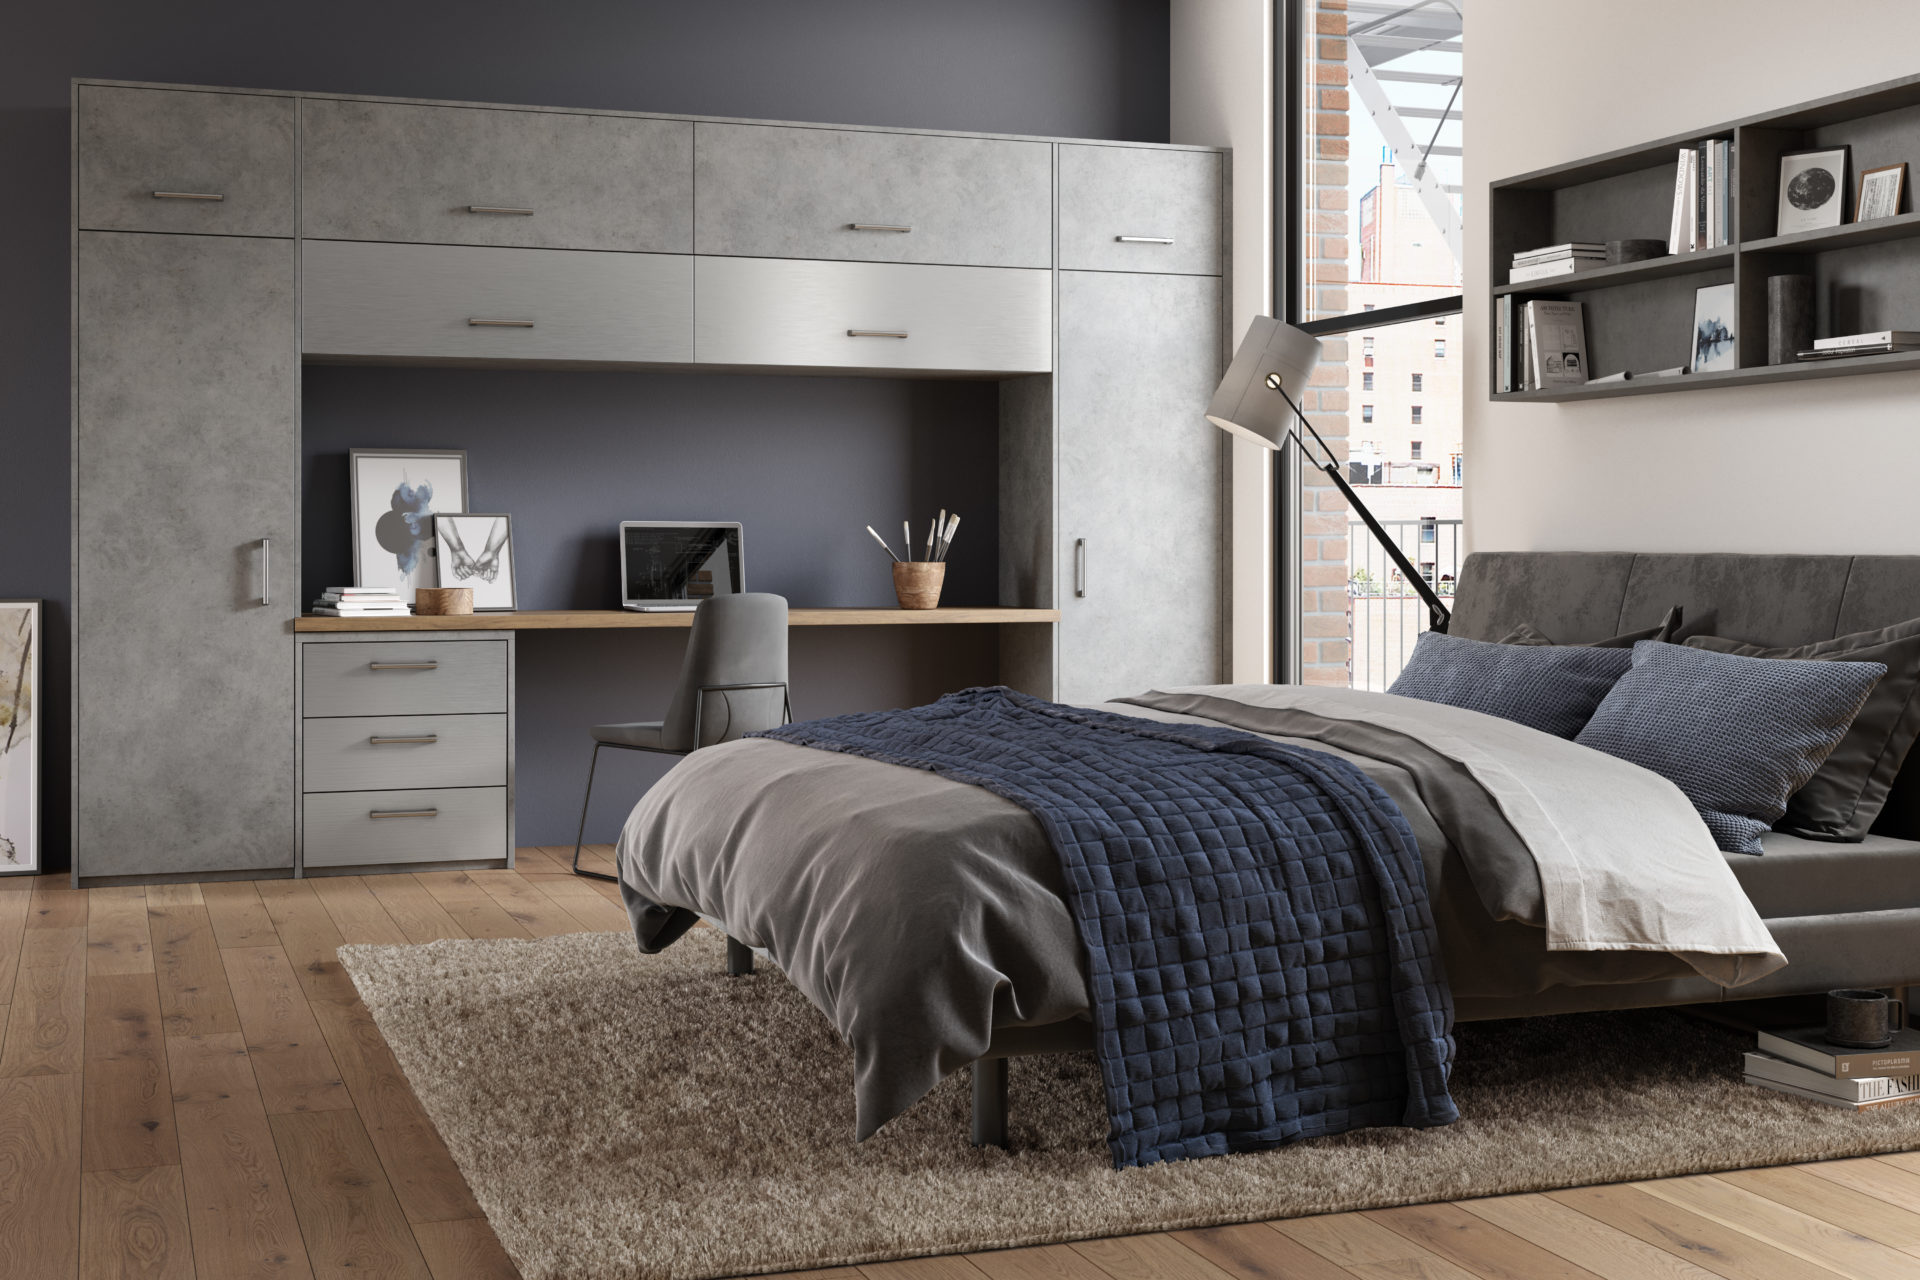 Magma Steel and Stainless steel fitted bedroom